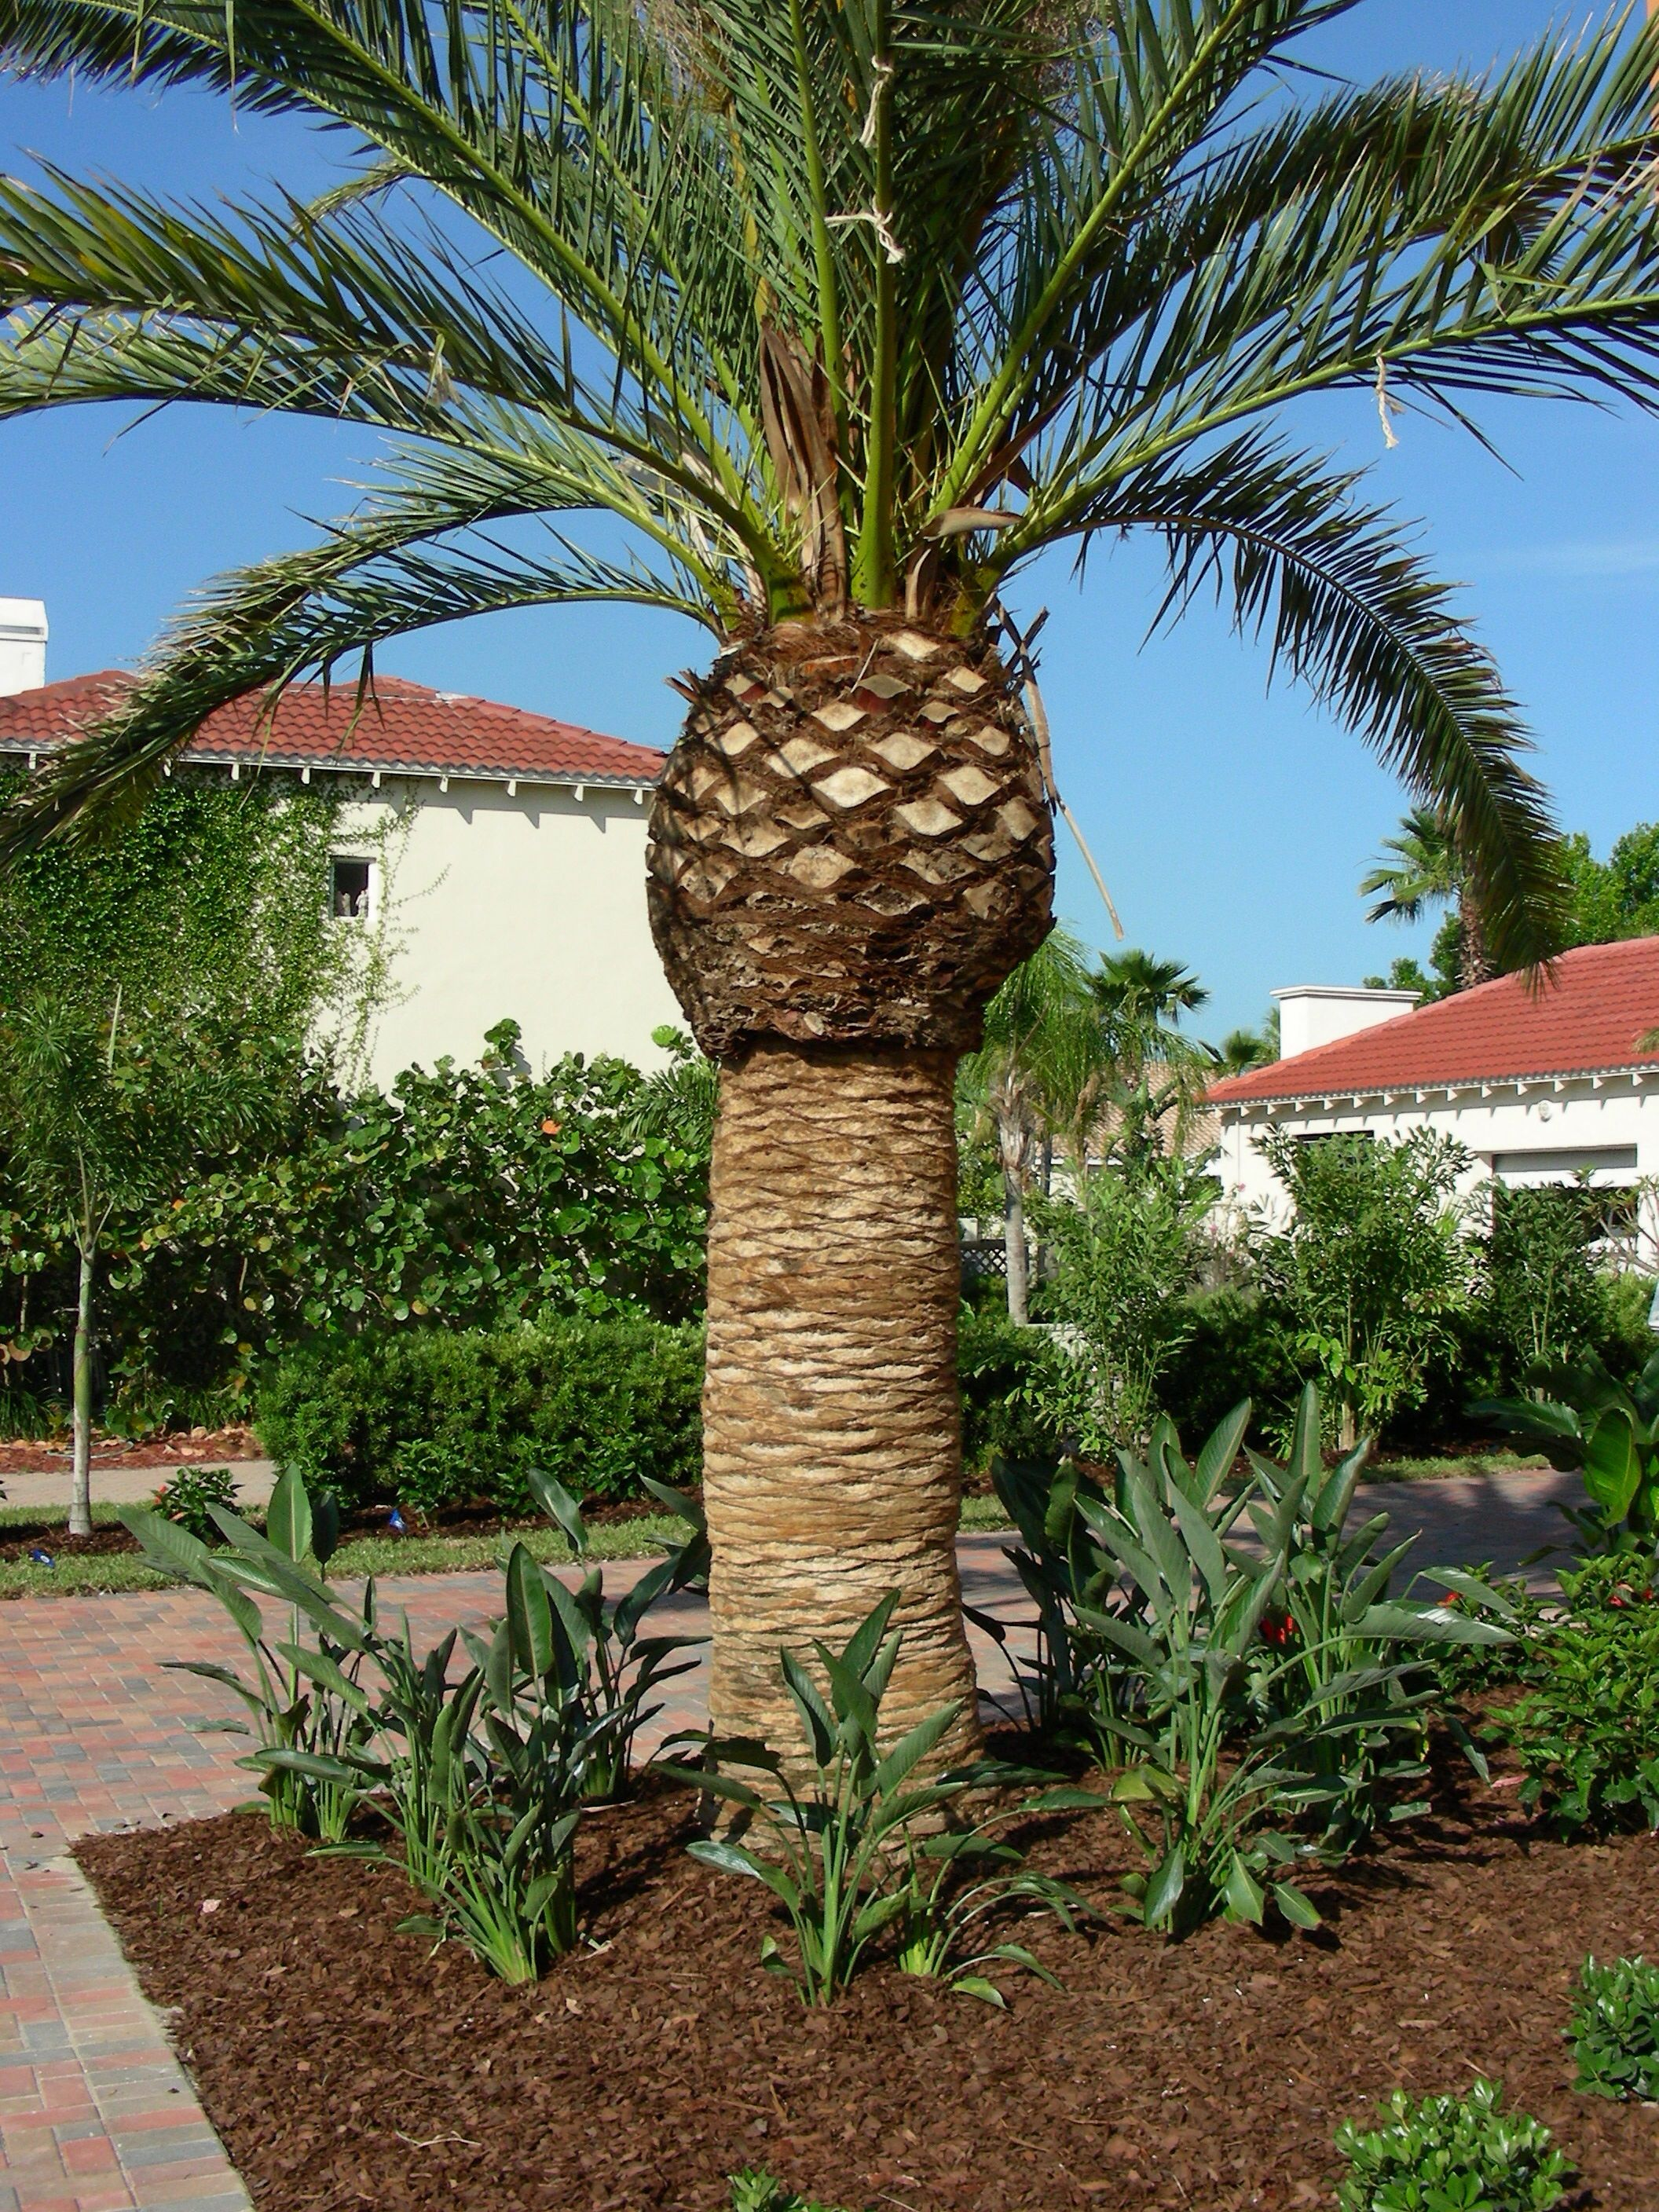 Canary Island Date Palm Is A Sentimental Favorite